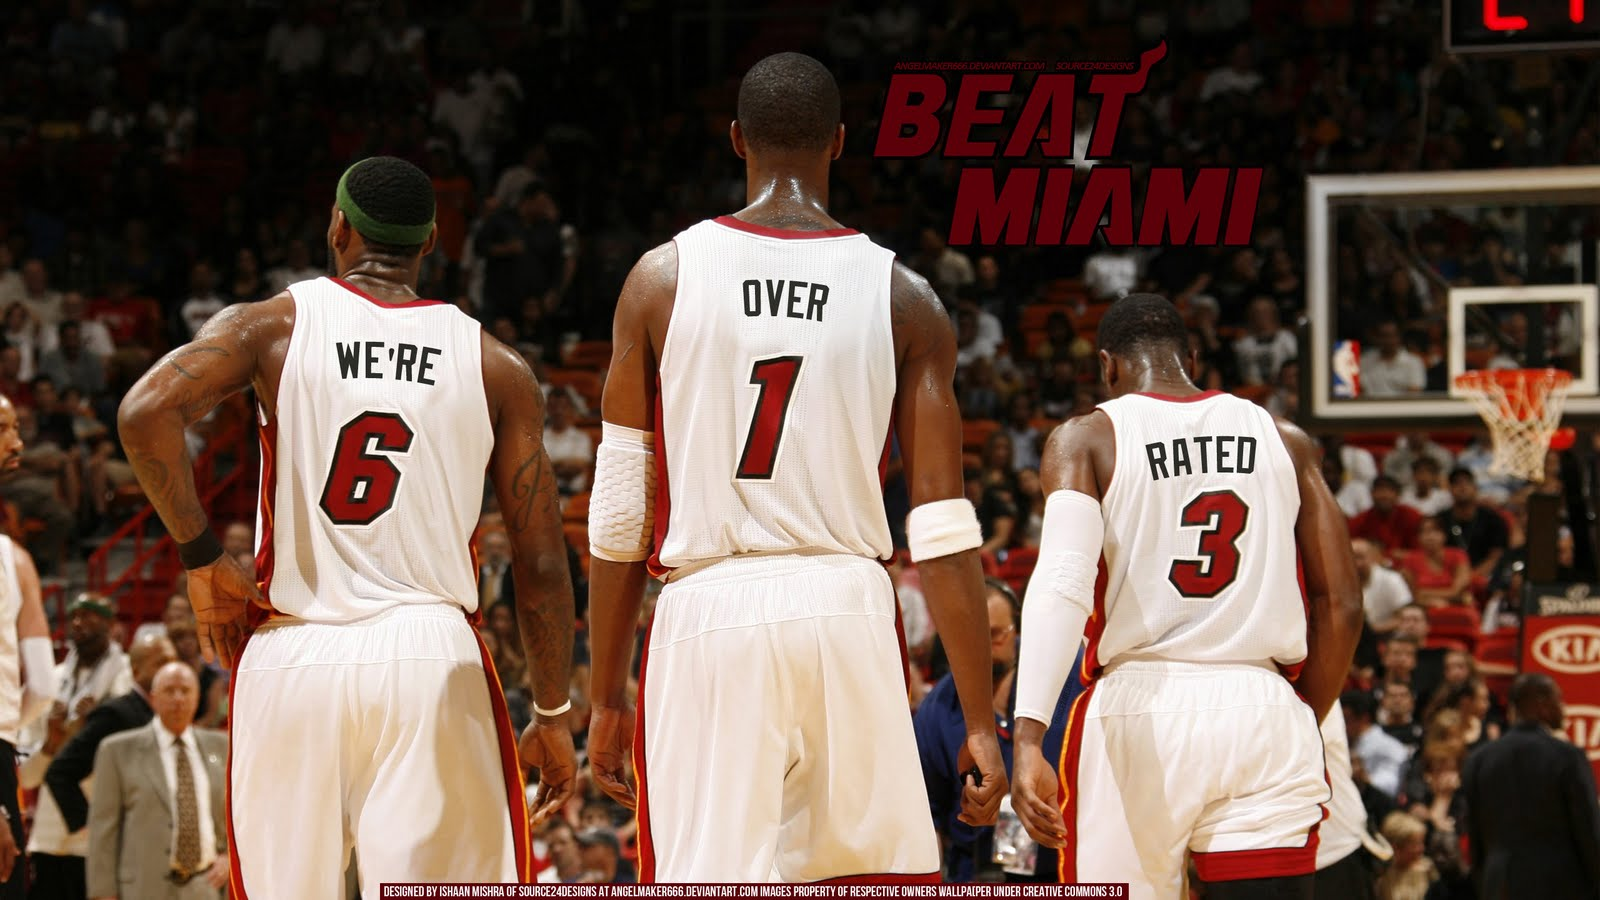 http://2.bp.blogspot.com/-YwKtGFaWuQI/TfWoJiyg80I/AAAAAAAAFtk/zY0buruySIU/s1600/Heat-Over-Rated-2011-NBA-Finals-Widescreen-Wallpaper-BasketWallpapers.com-.jpg